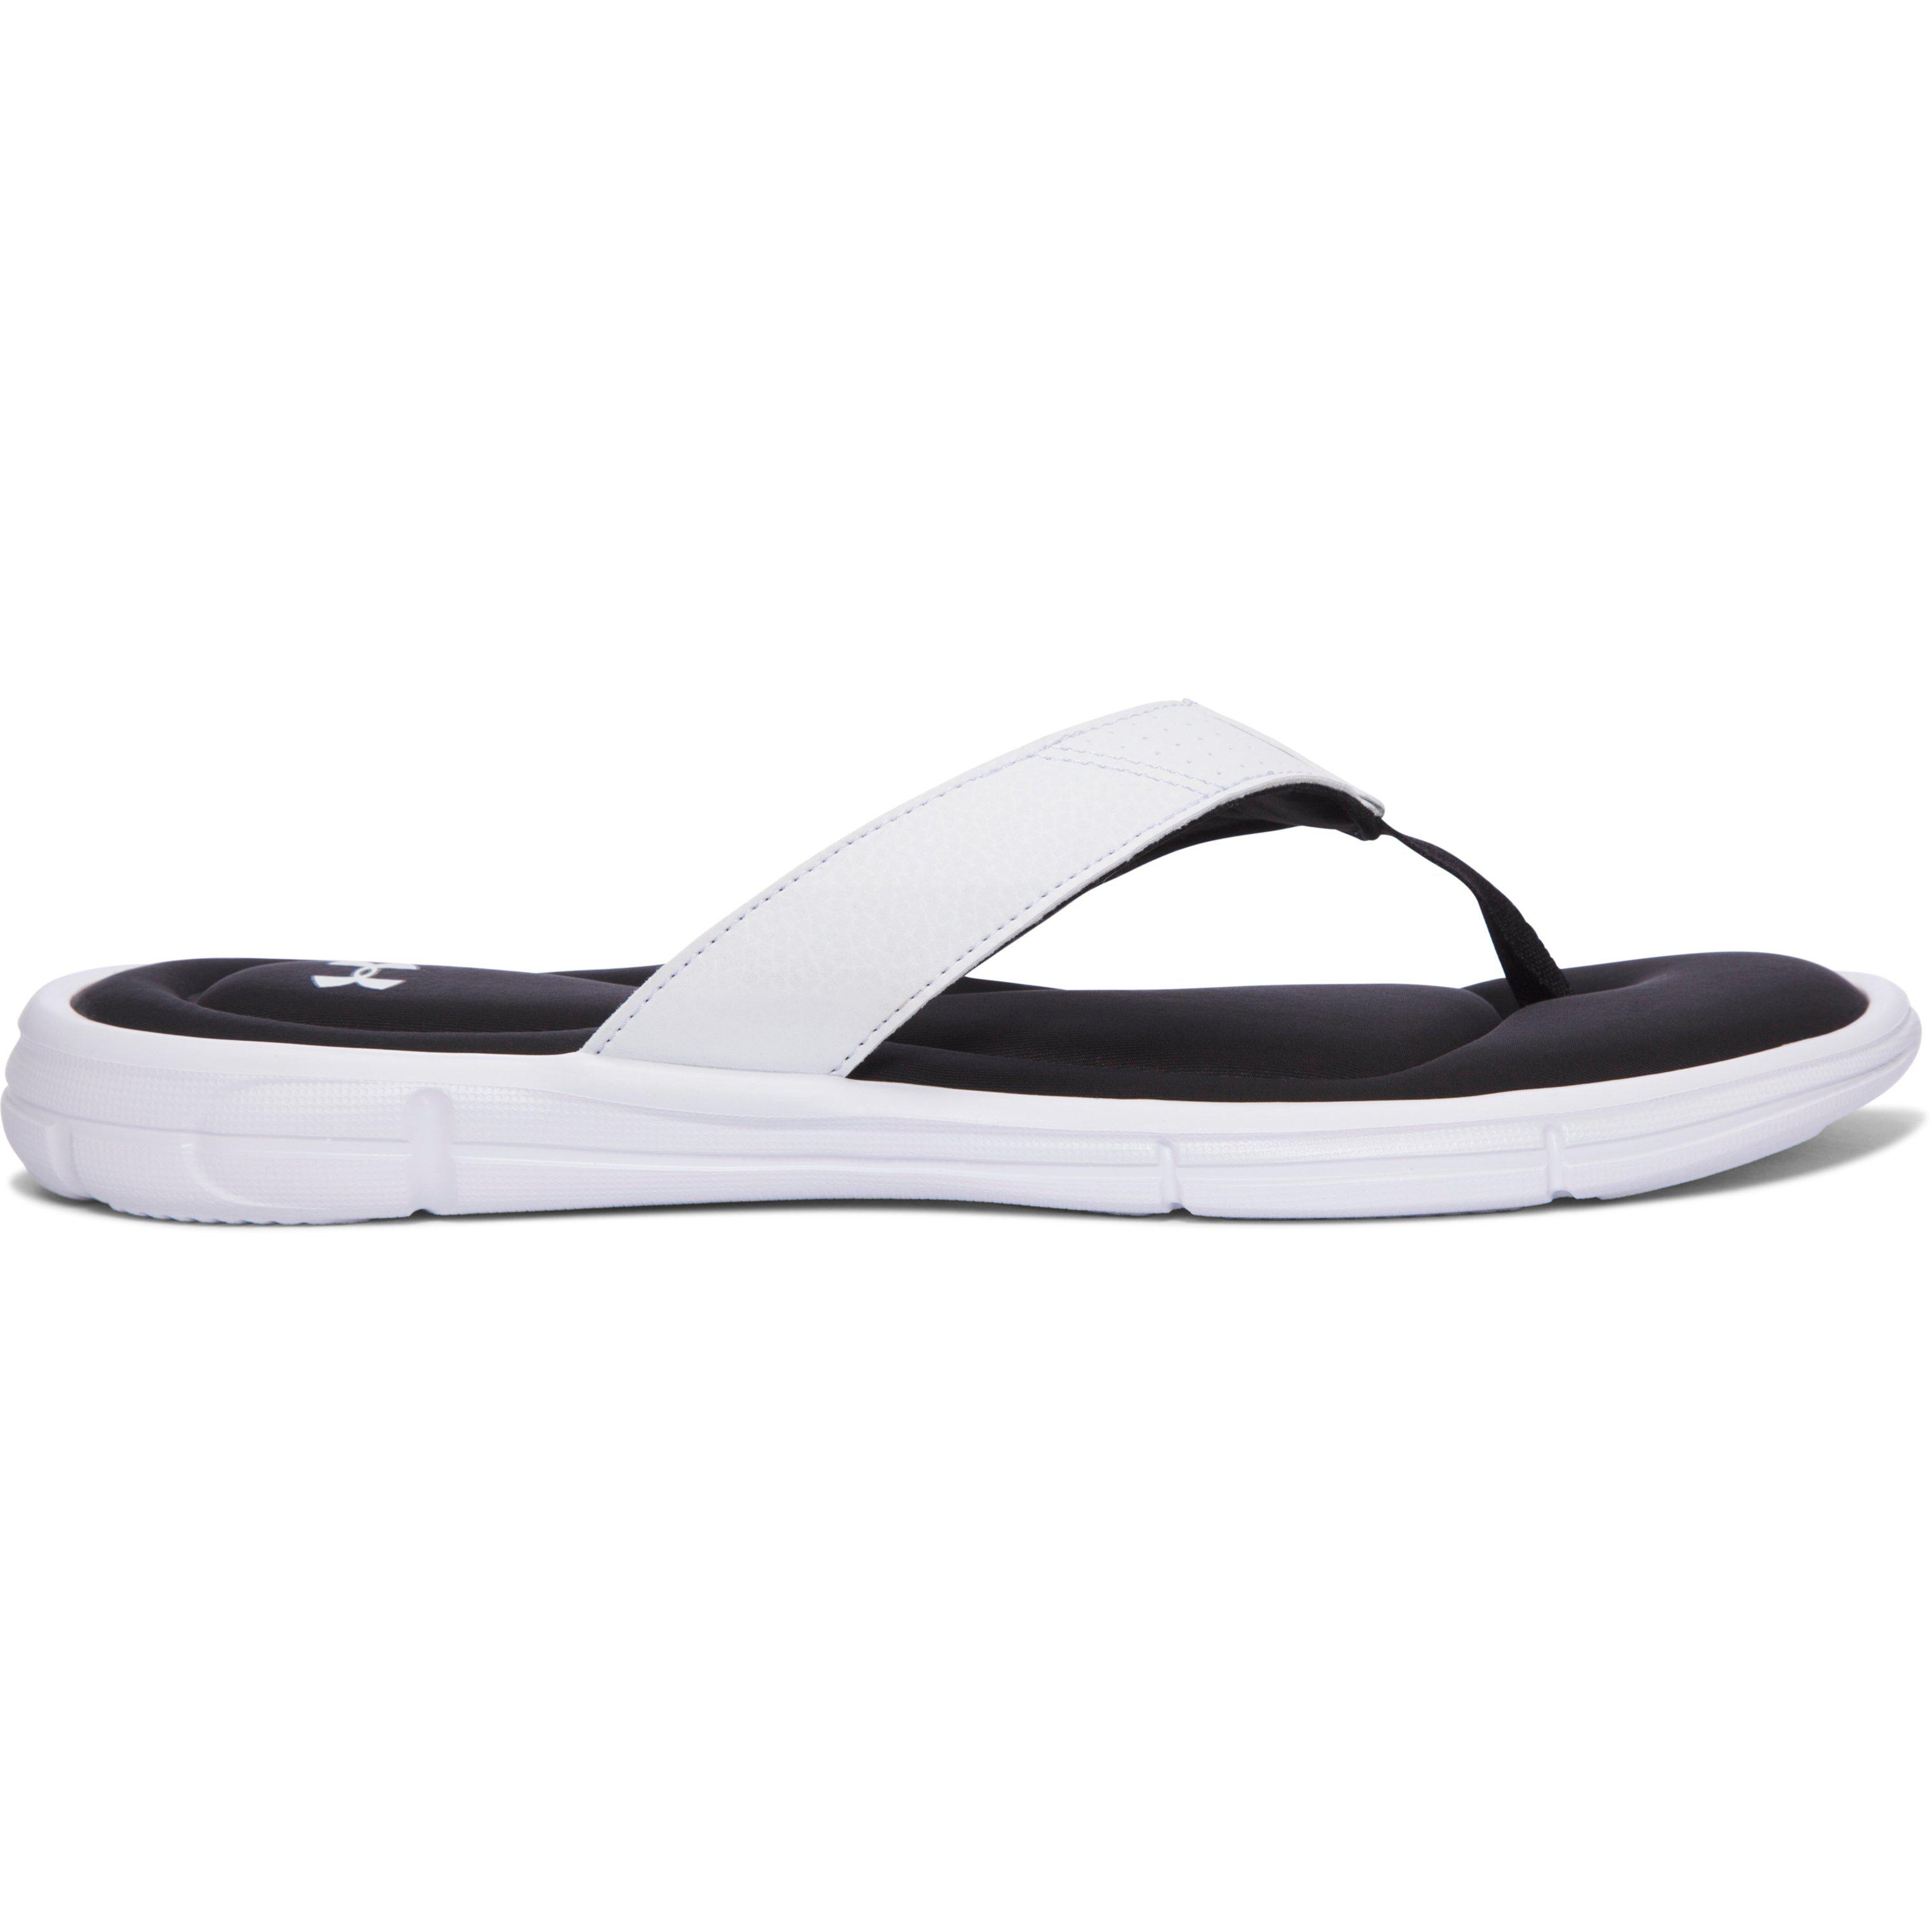 1654a2477e Under Armour White Ignite Ii Thong Flip Flops for men